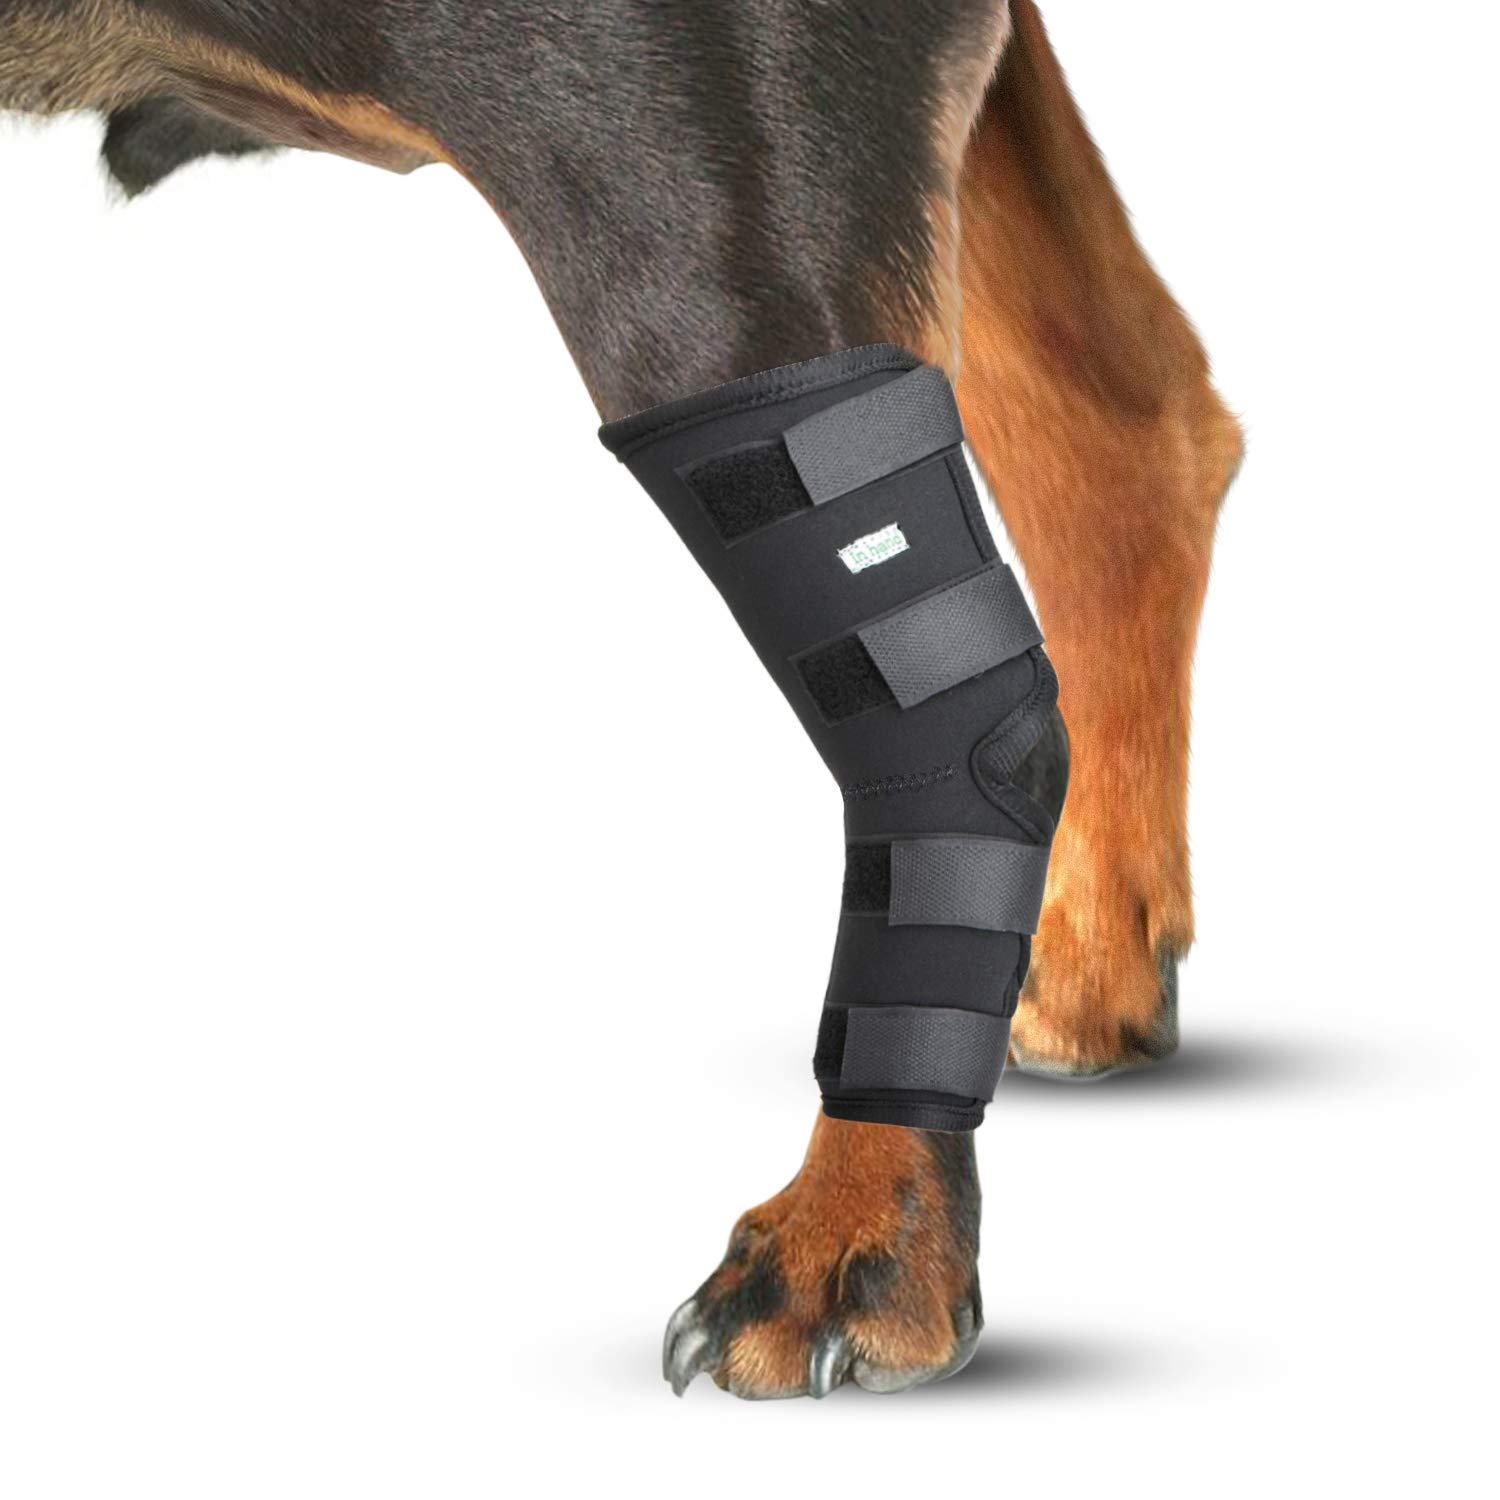 691bfcd06e IN HAND Dog Leg Brace, Pair of Dog Canine Rear Leg Hock Joint Wraps  Protects Wounds As They Heal Compression Brace Heals, Prevents Injuries and  Sprains, ...